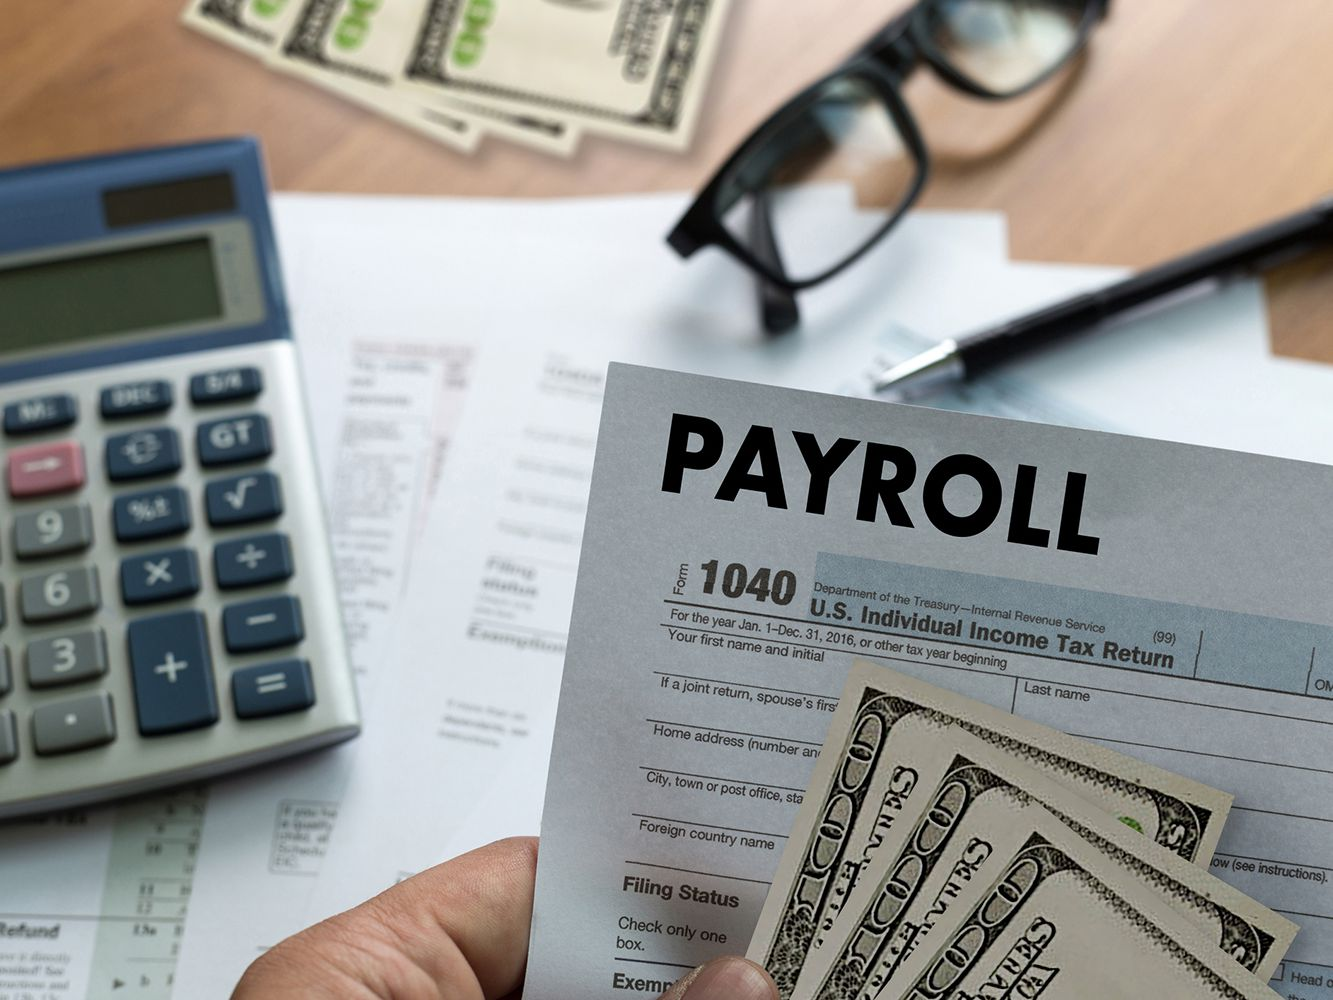 What Is a Payroll Card?